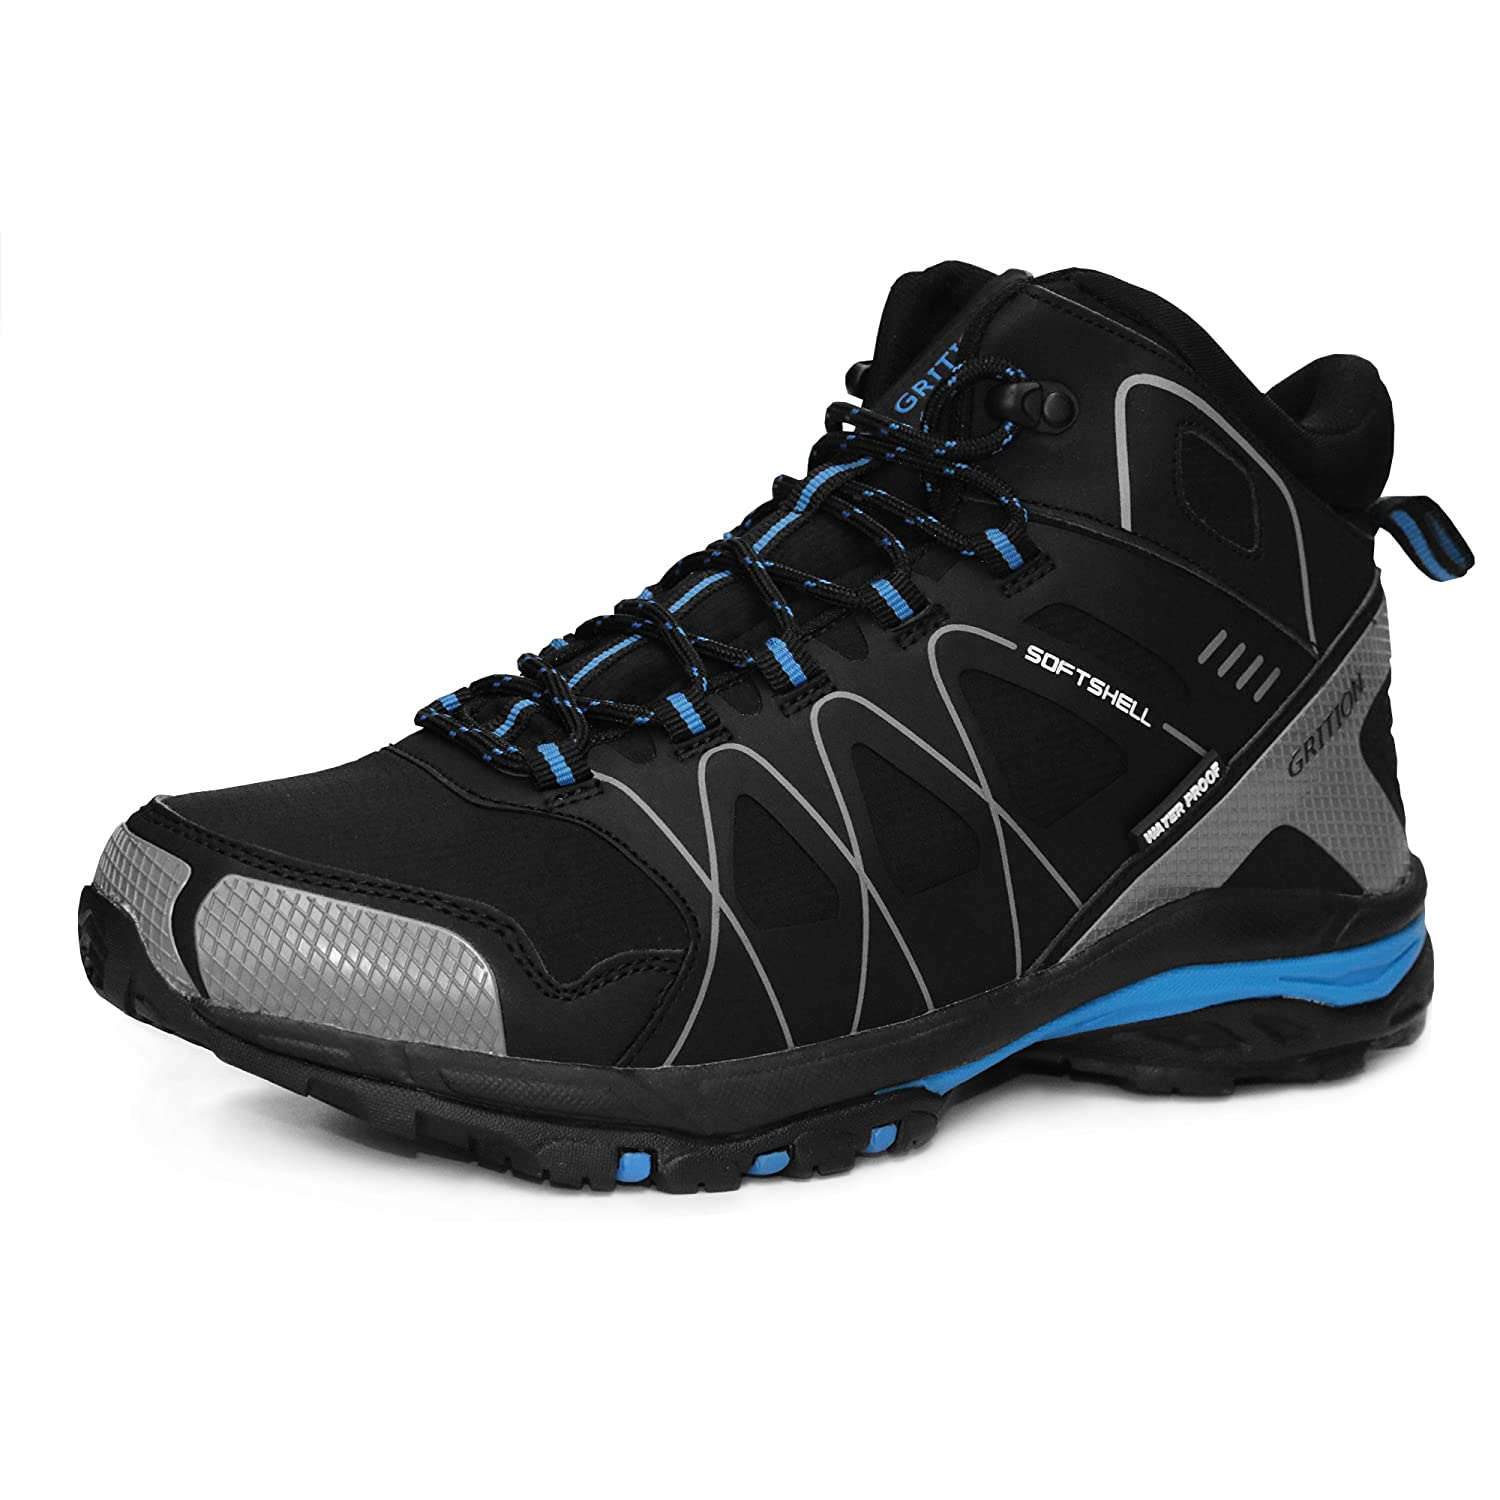 af3344deea2 GRITION Mens Walking Boots Waterproof Running Hiking Boots Slip Resistance  Outdoor Lightweight Lace Up Trainers Ankle Protection Winter Warm ...